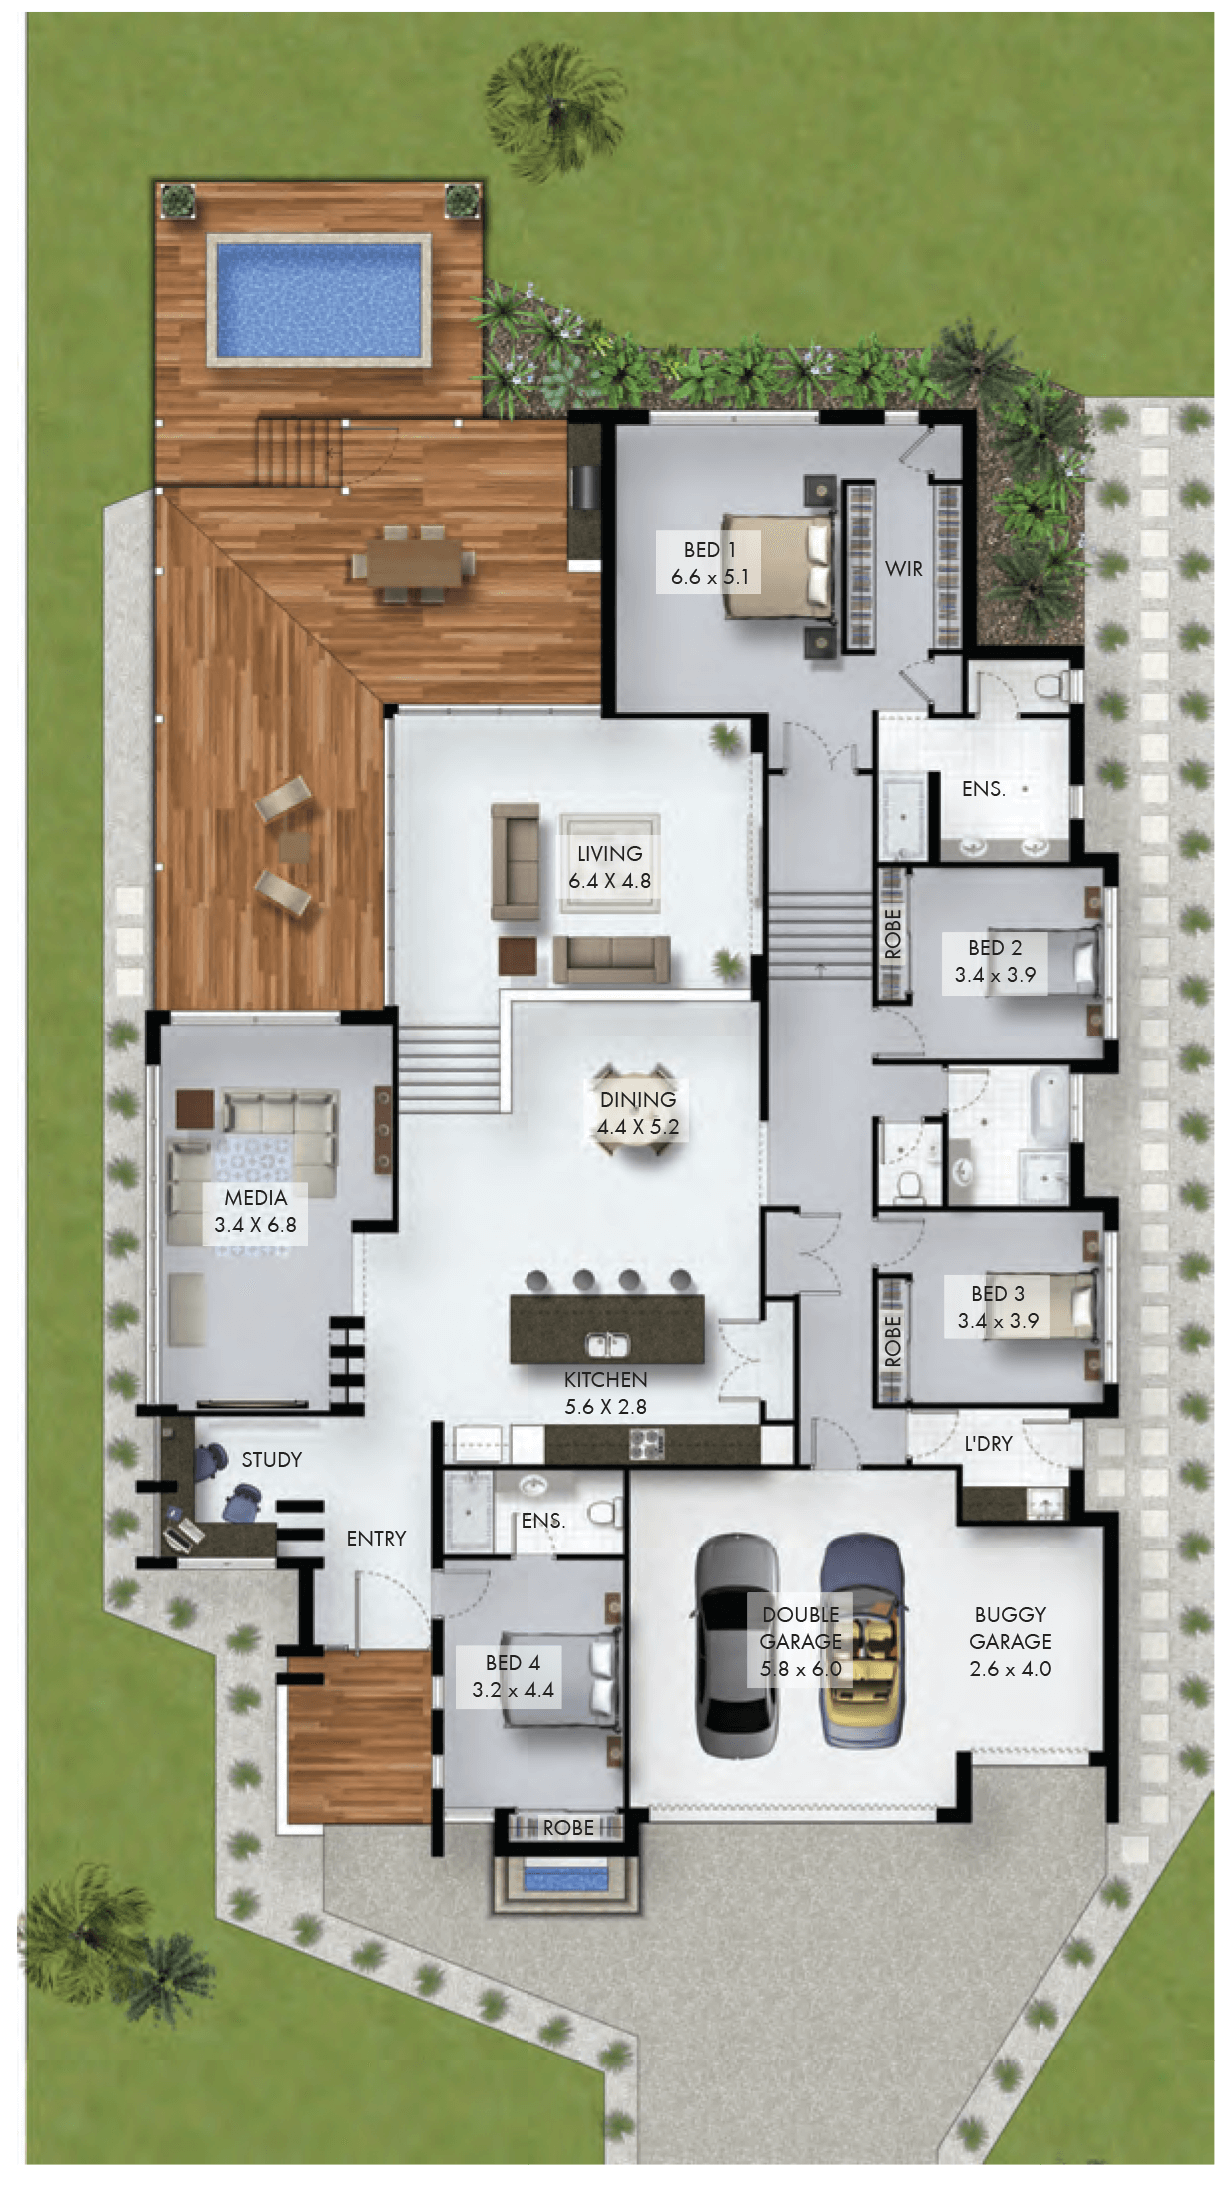 4 bedroom home with study nook and triple car garage for The world deck plans